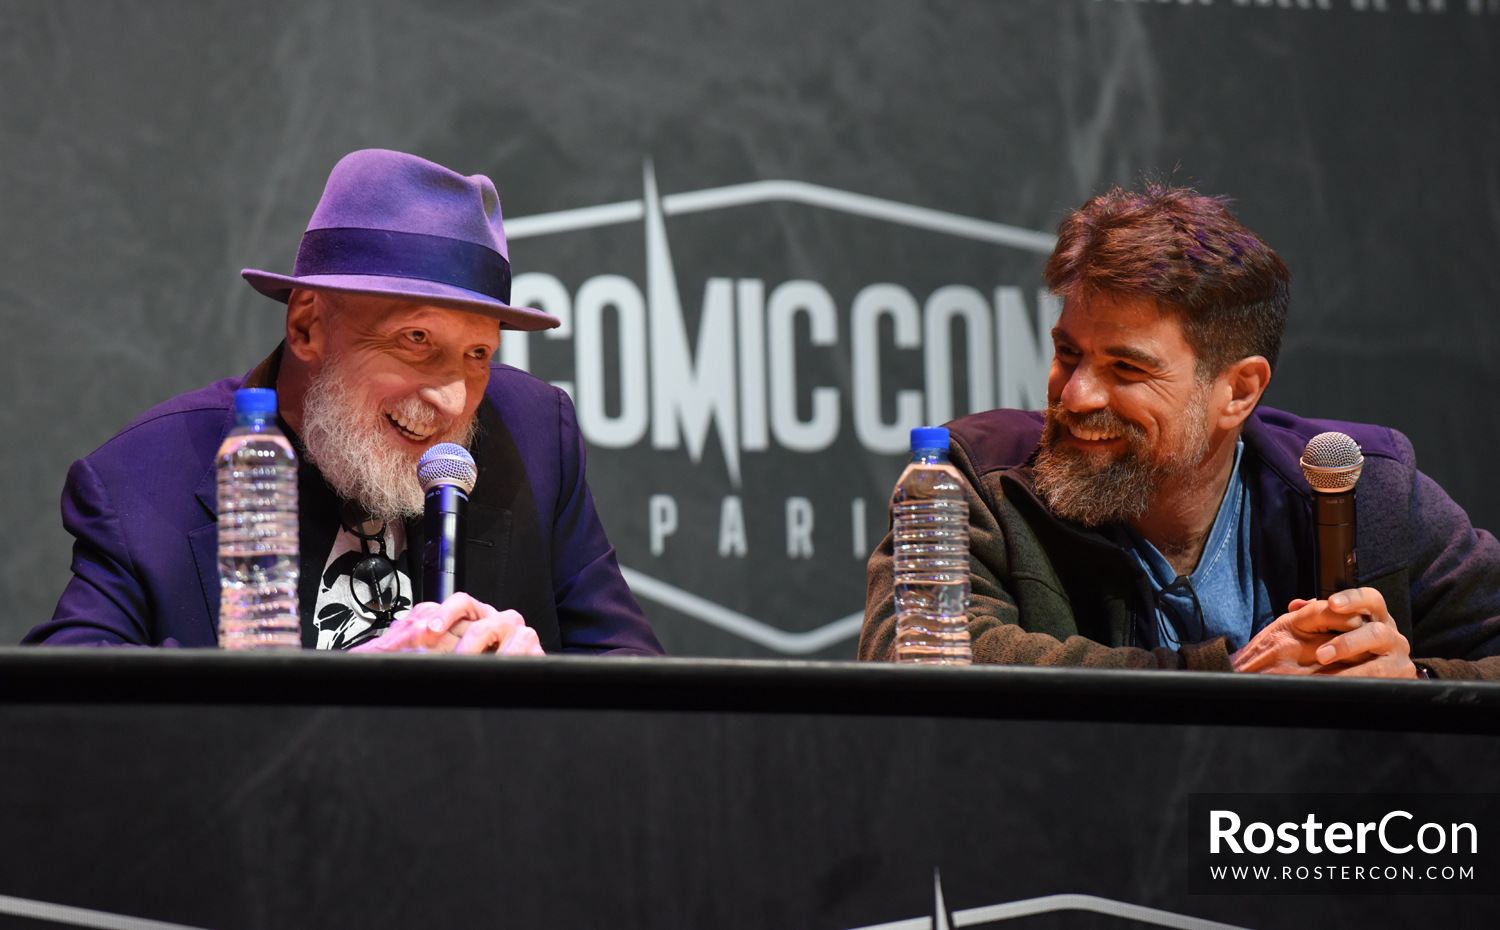 Frank Miller & Andy Kubert - Comic Con Paris 2018